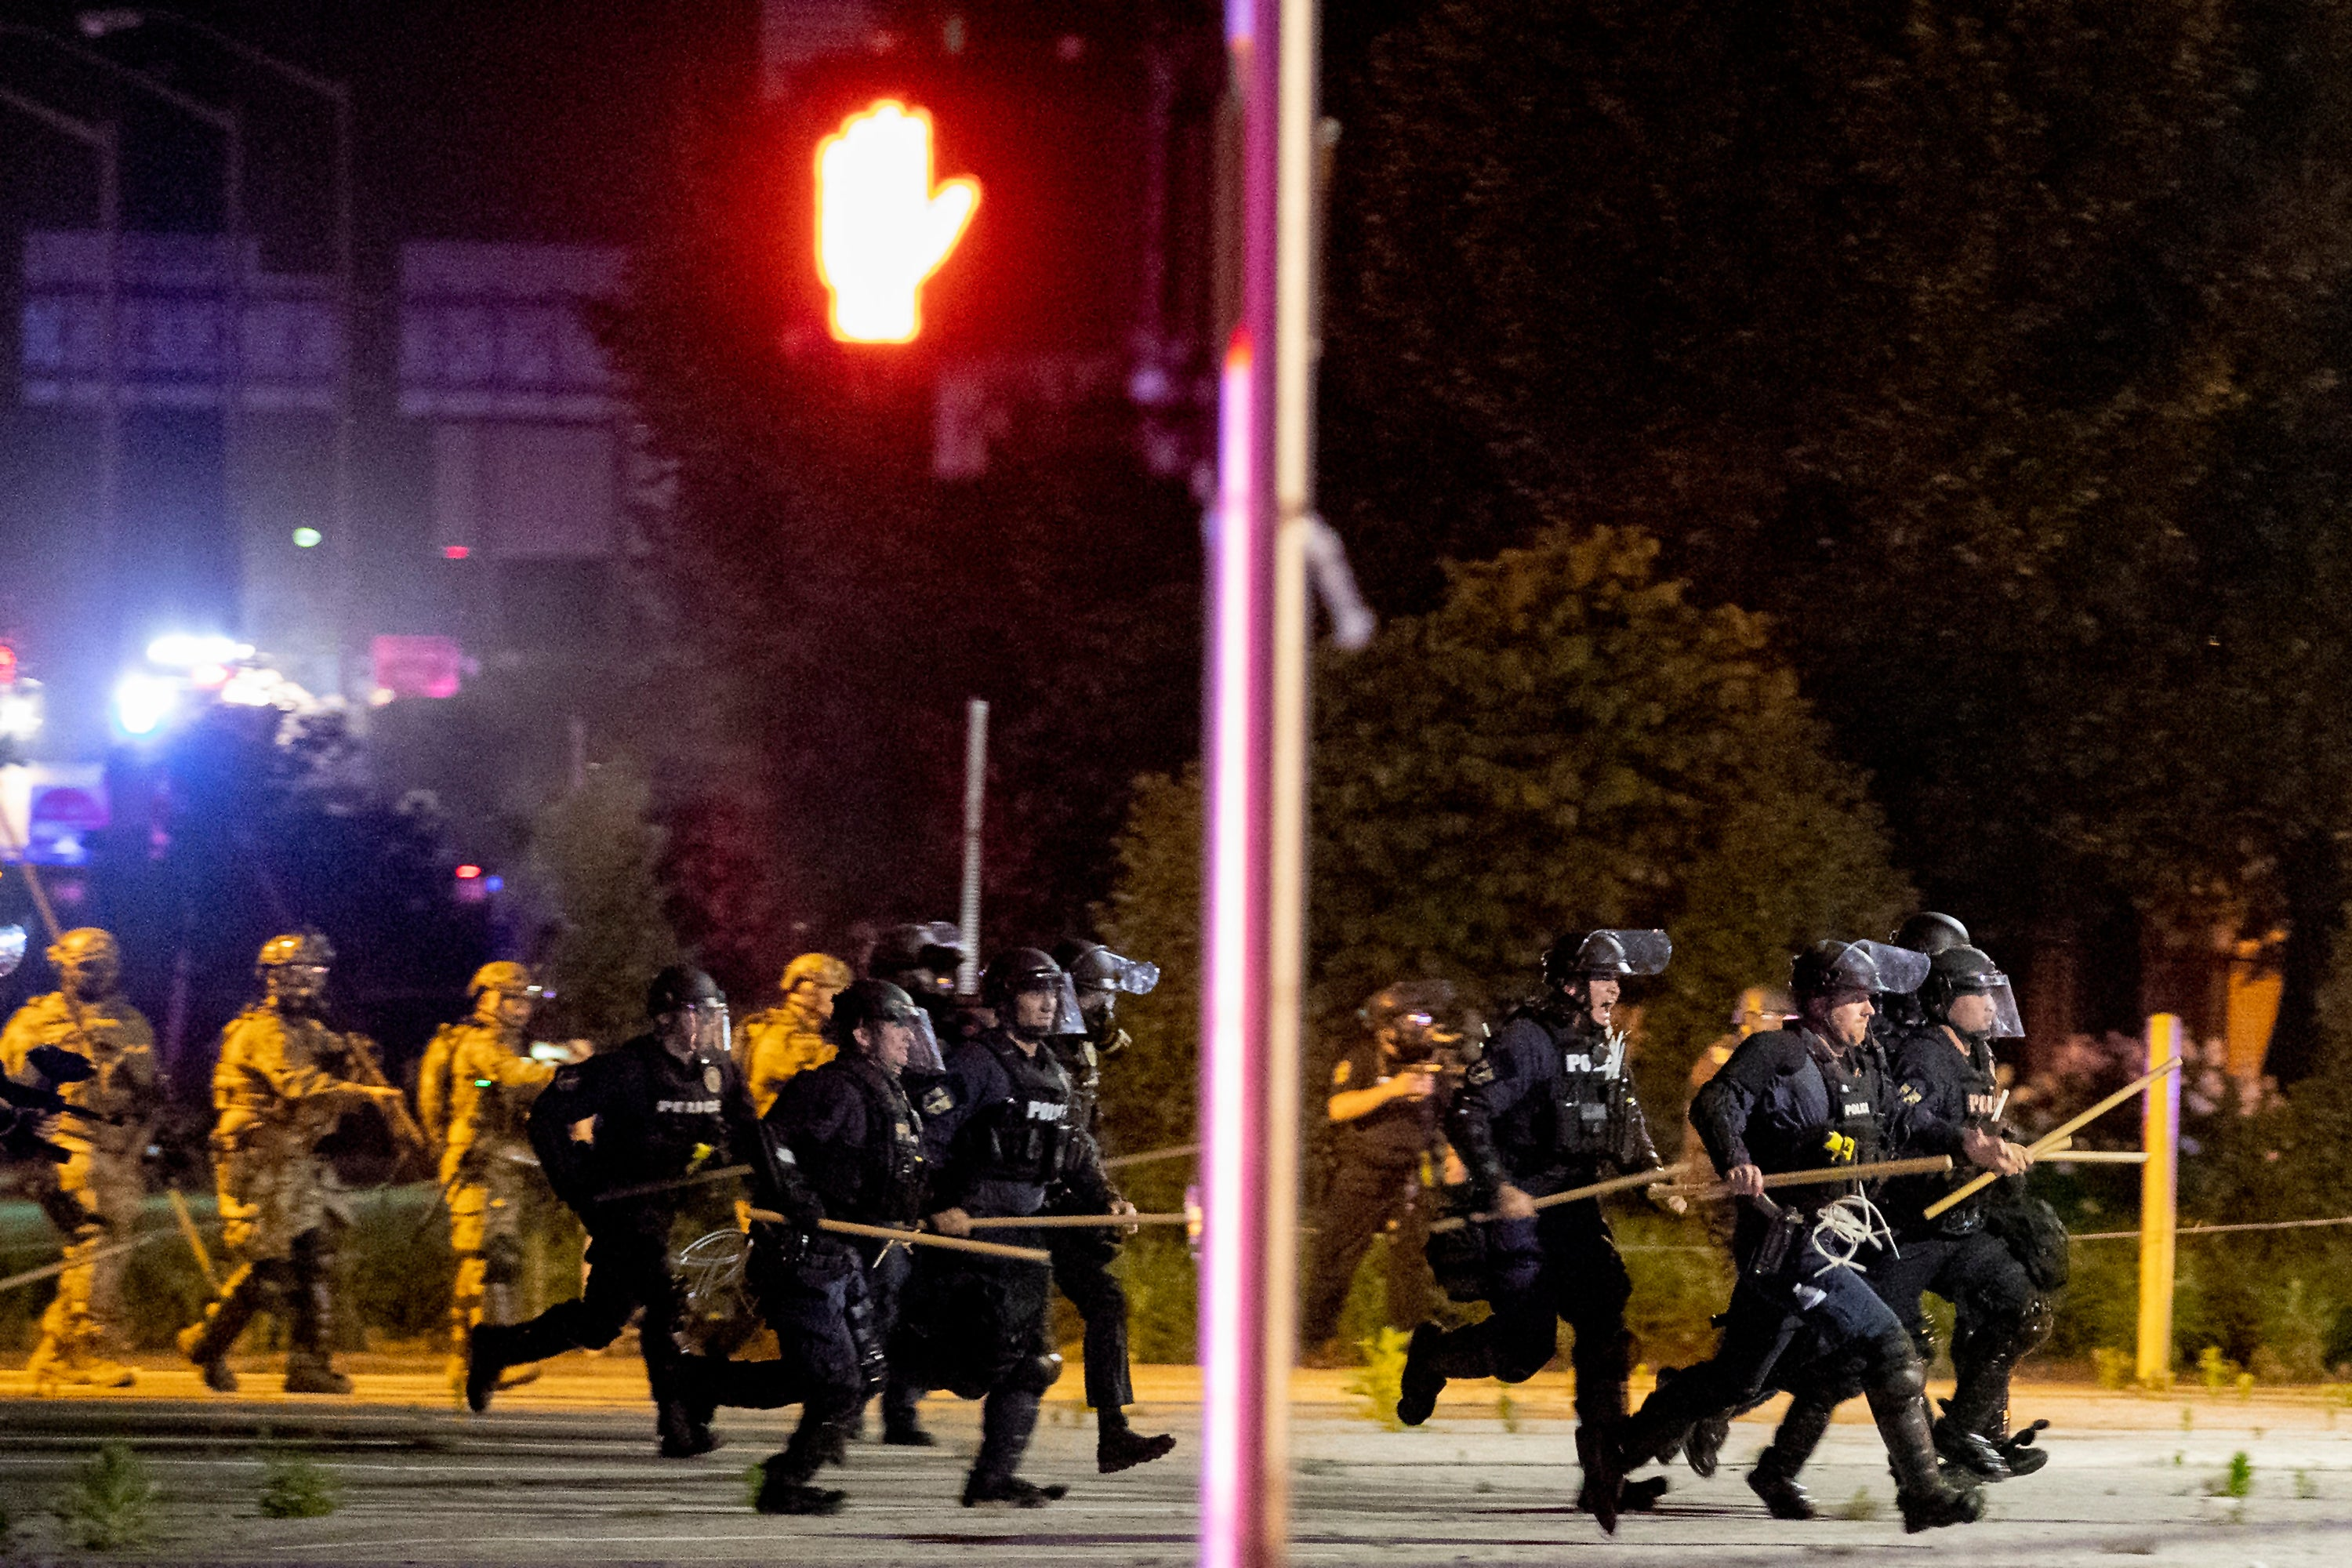 Police killings are more likely among law enforcement agencies that receive military gear, data shows